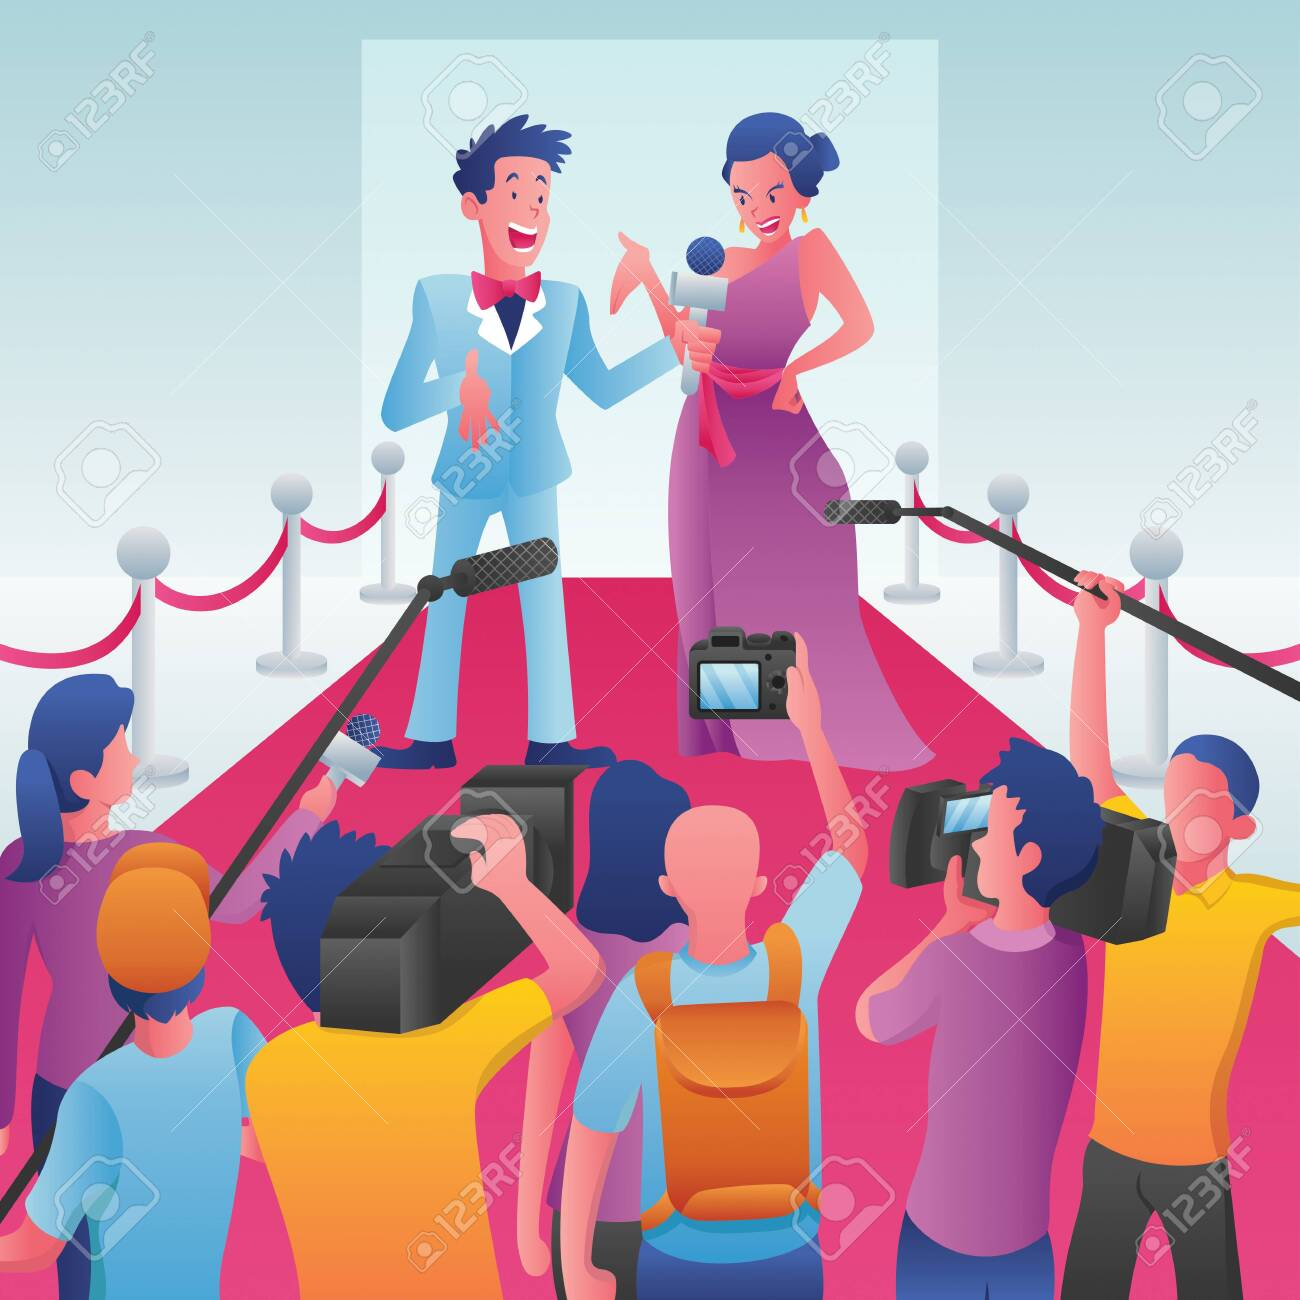 Cartoon illustration of a journalist interviewing a celebrity on a red carpet event. - 143560202